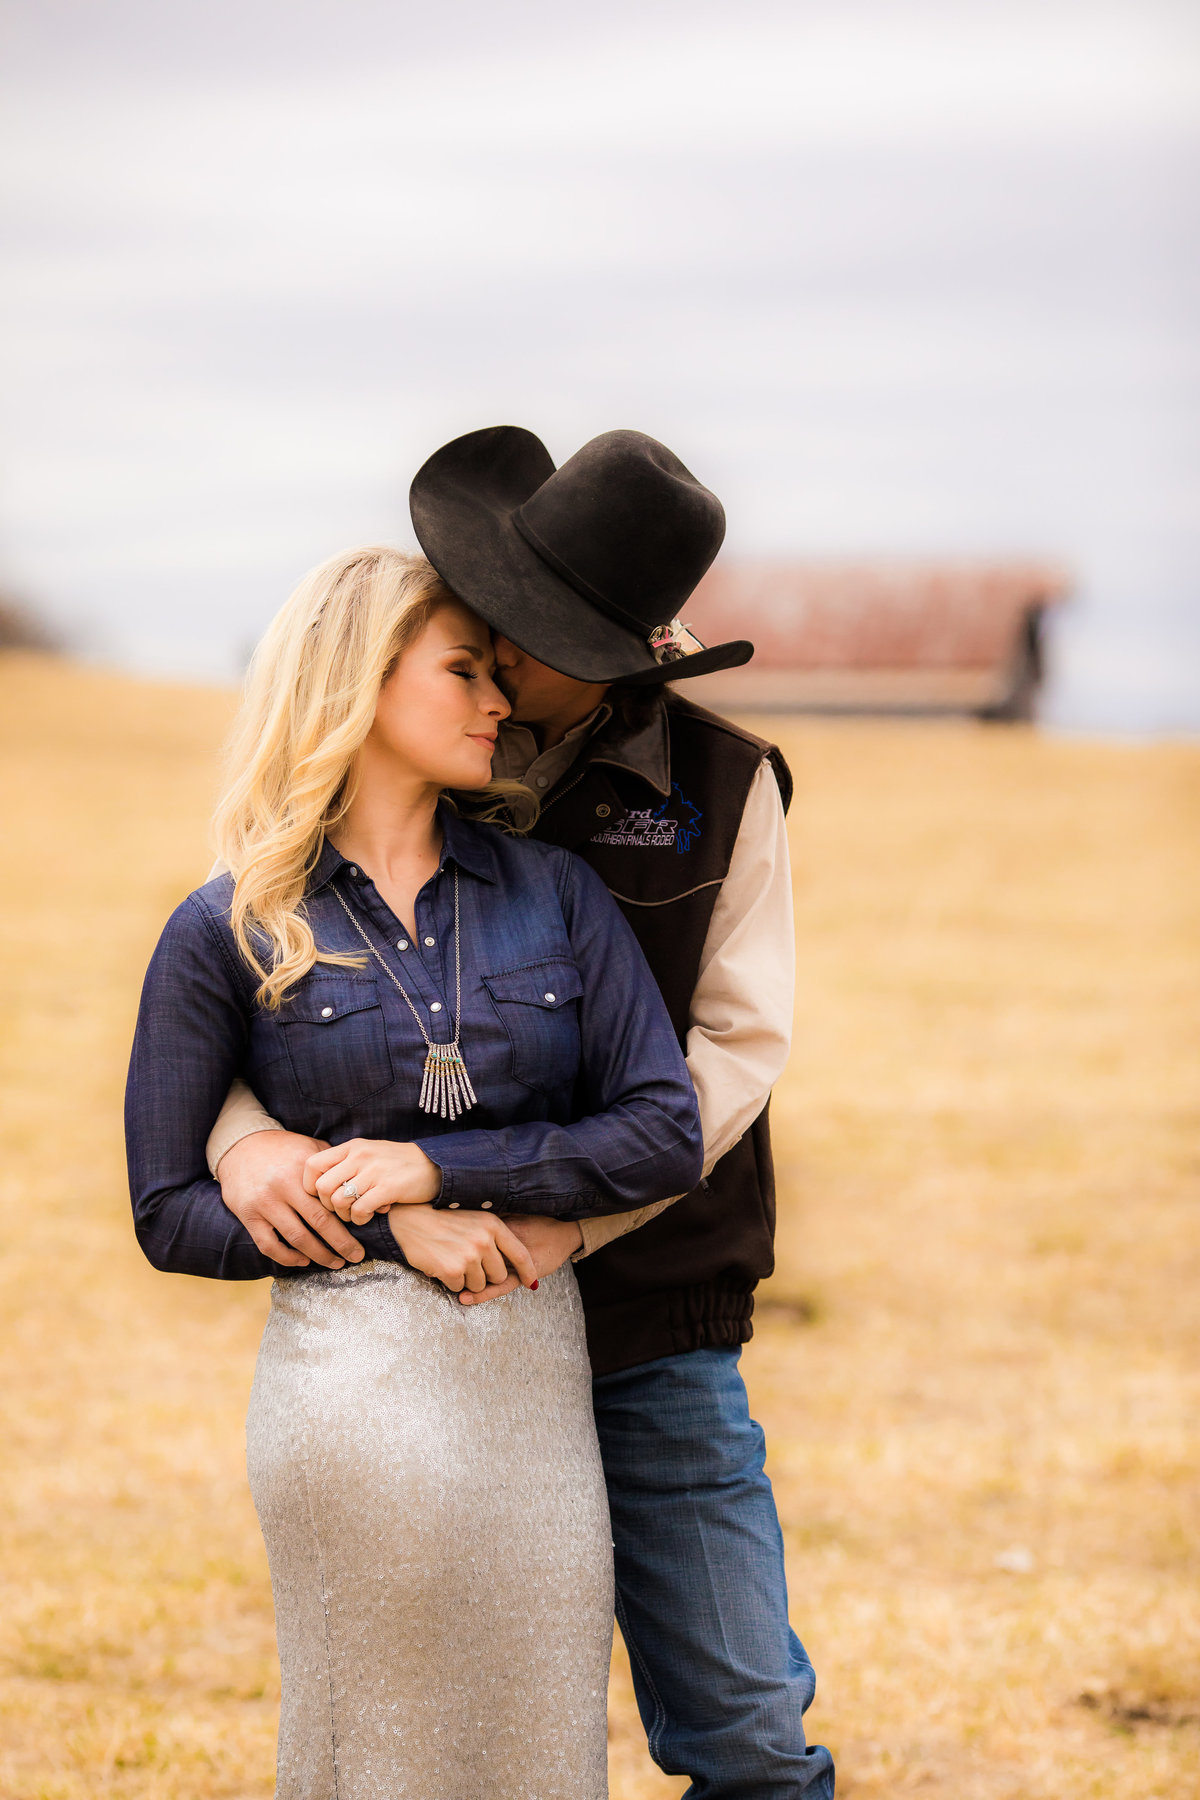 Cowboys Bride - Nashville Weddings - Nashville Wedding Photographer - Nashville Wedding Photographers - Engagement - Ranch Weddings - Ranch engagement Photos - Cowboys and Belles - Denim - Wedding Photographer007